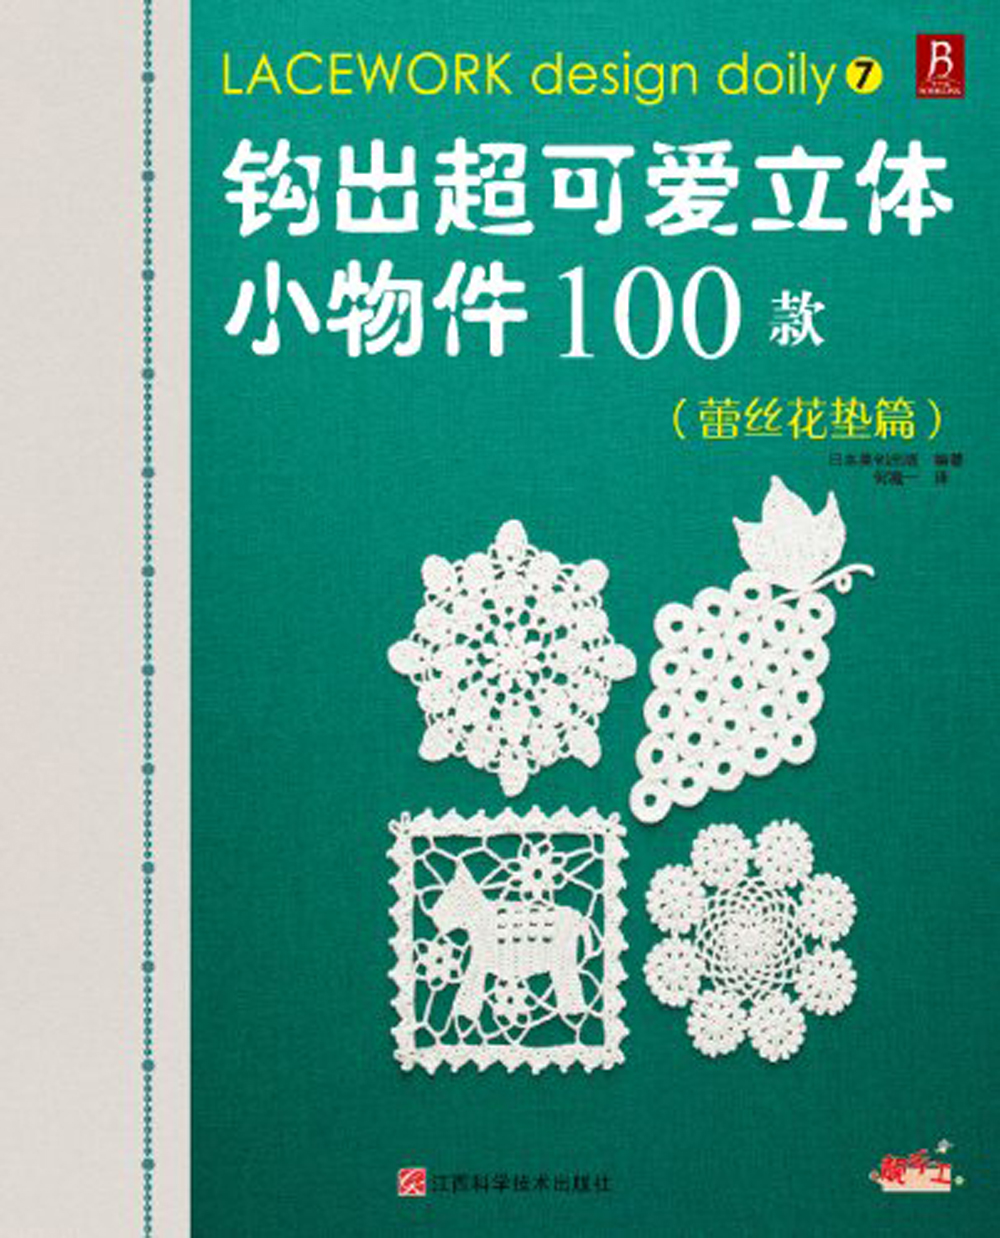 Lacework Design Doily / Weaving super-cute 3d small objects 100 models Chinese knitting book / Handmade Carft Book 100 super cute little embroidery chinese embroidery handmade art design book